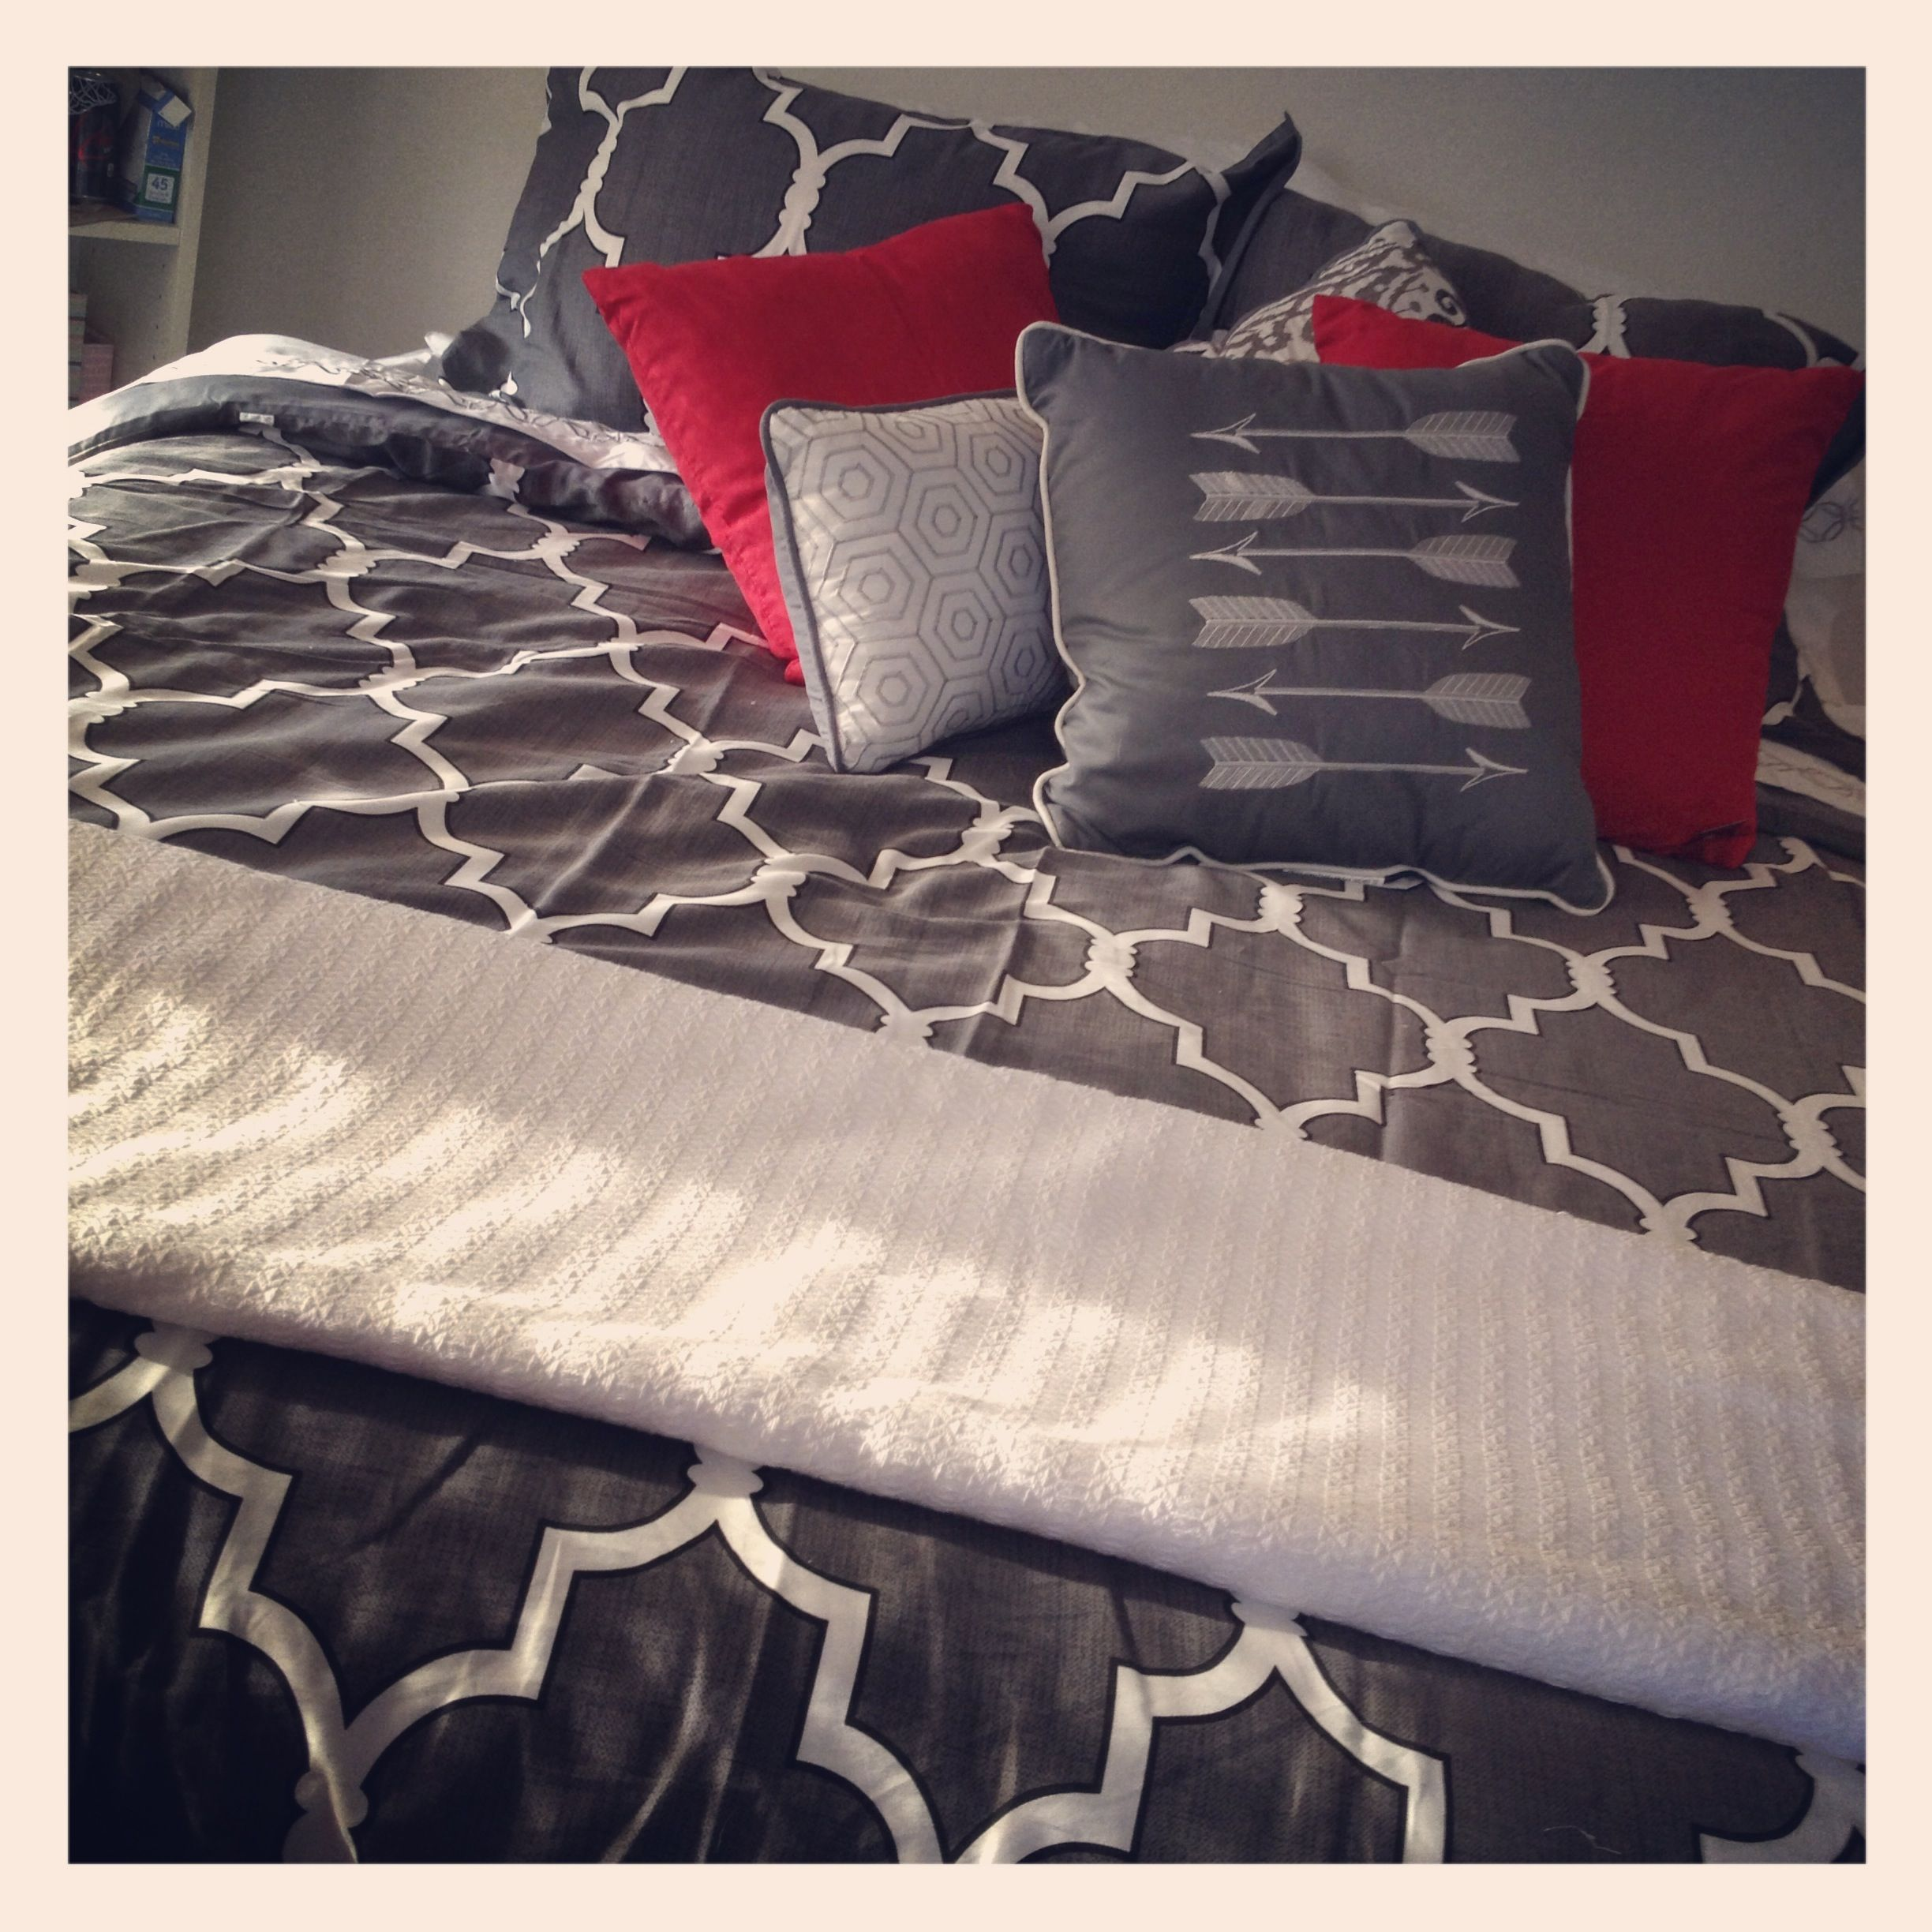 grey red white bedding i want pinterest white bedding bedrooms and room. Black Bedroom Furniture Sets. Home Design Ideas